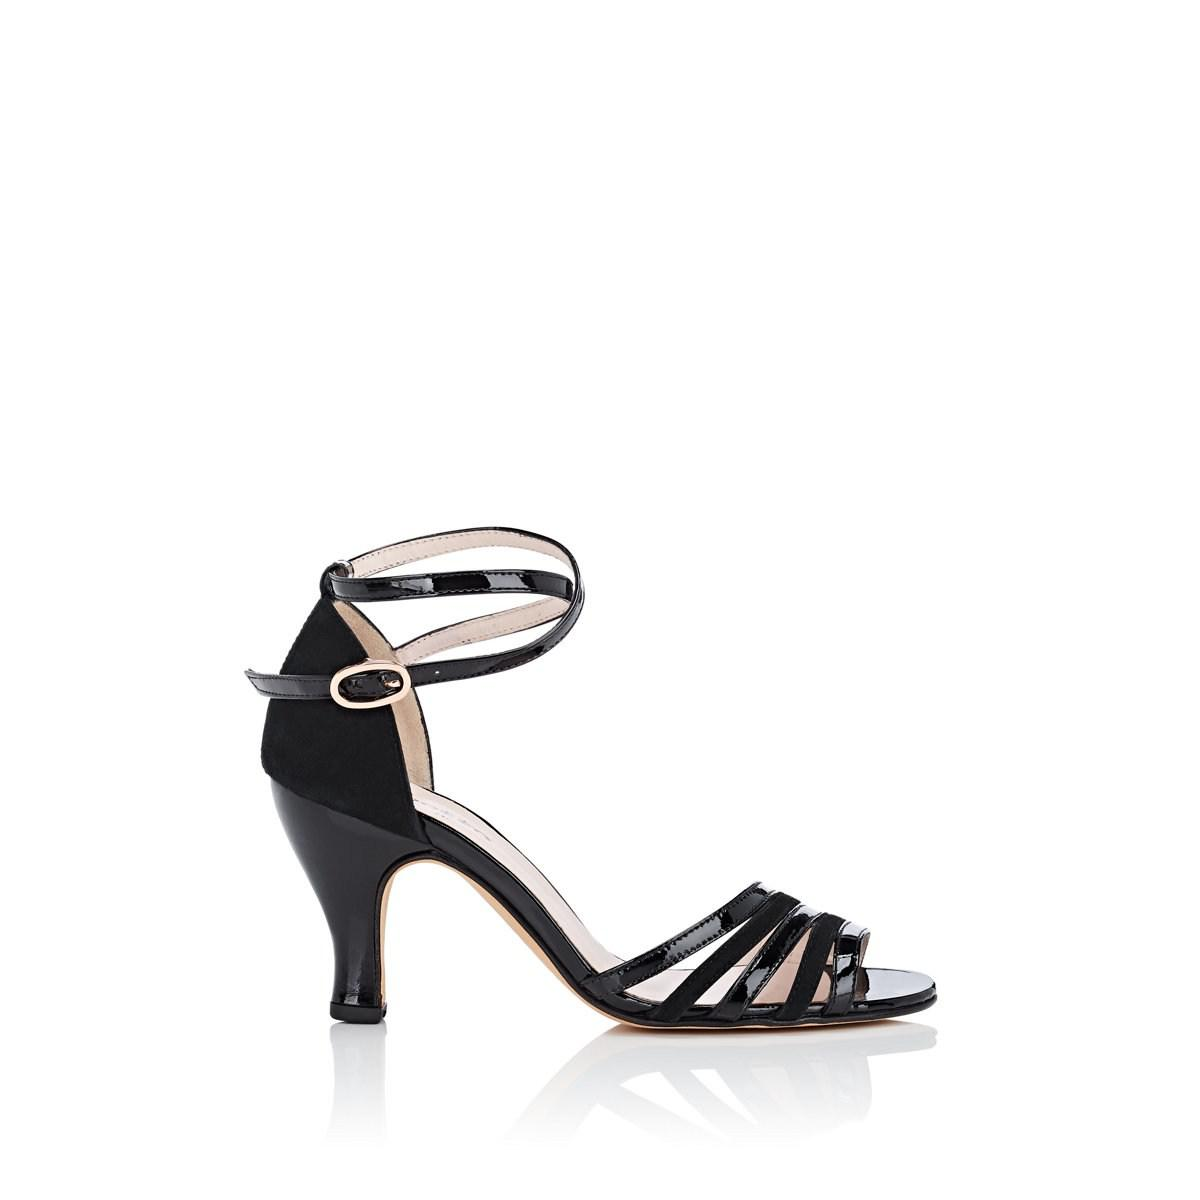 best loved 3d834 28da8 repetto-Black-Elena-Patent-Leather-Suede-Sandals.jpeg